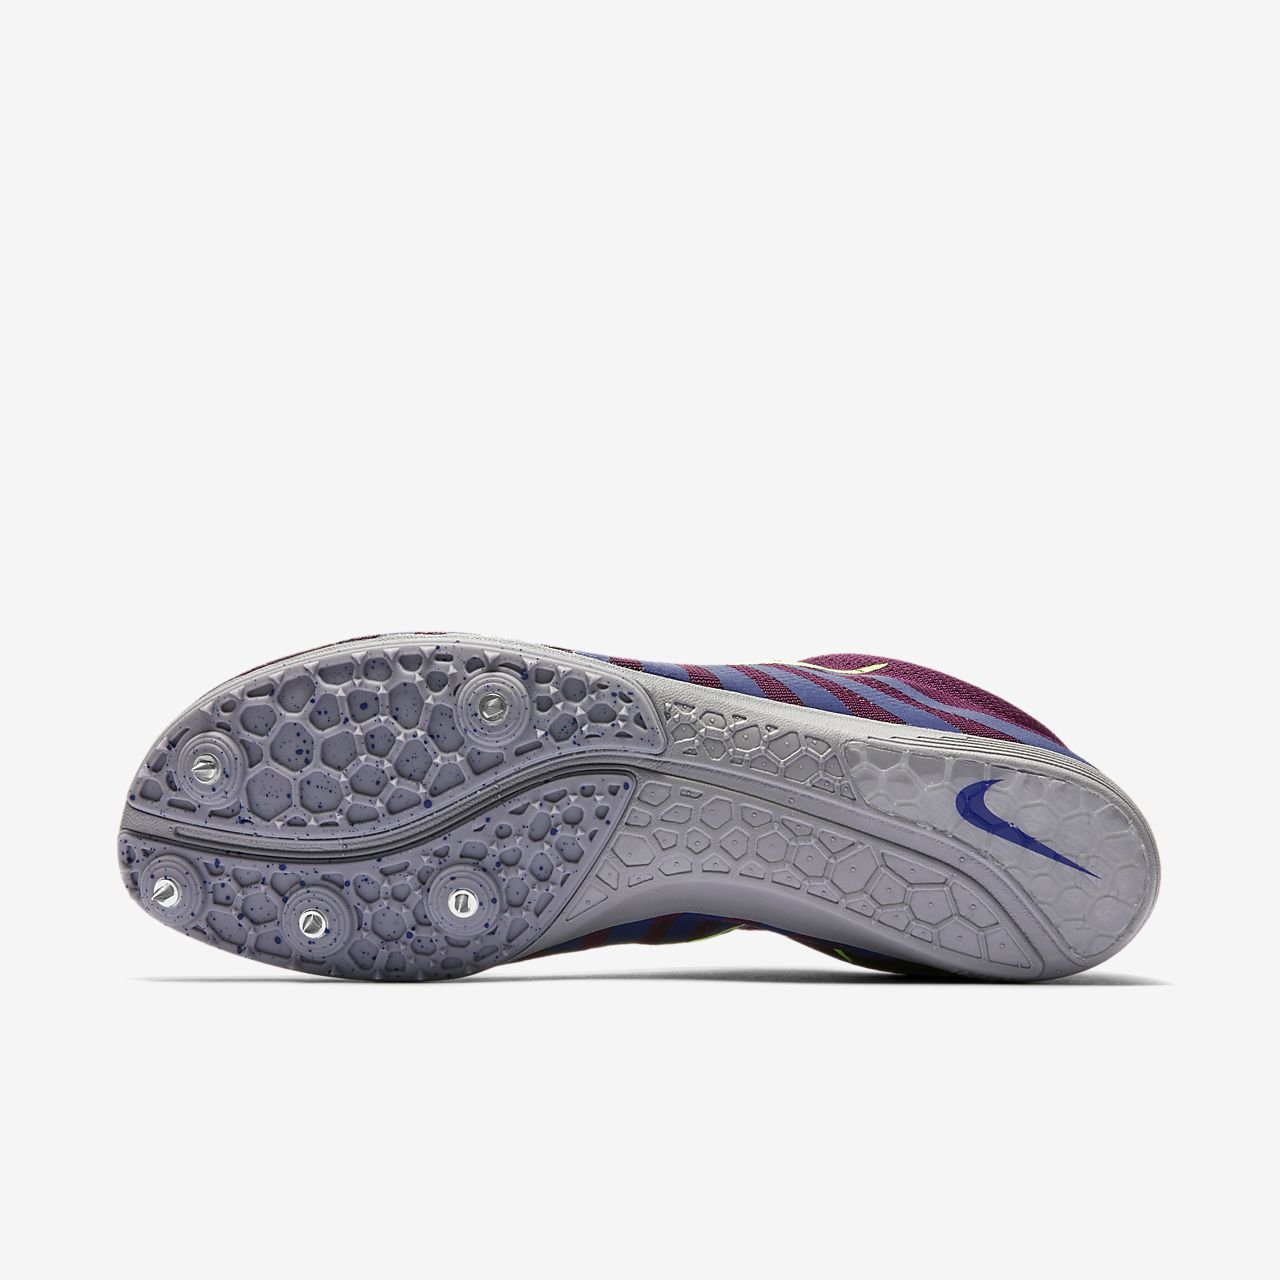 huge discount 8b11a bde55 ... Nike Zoom D Unisex Distance Spike